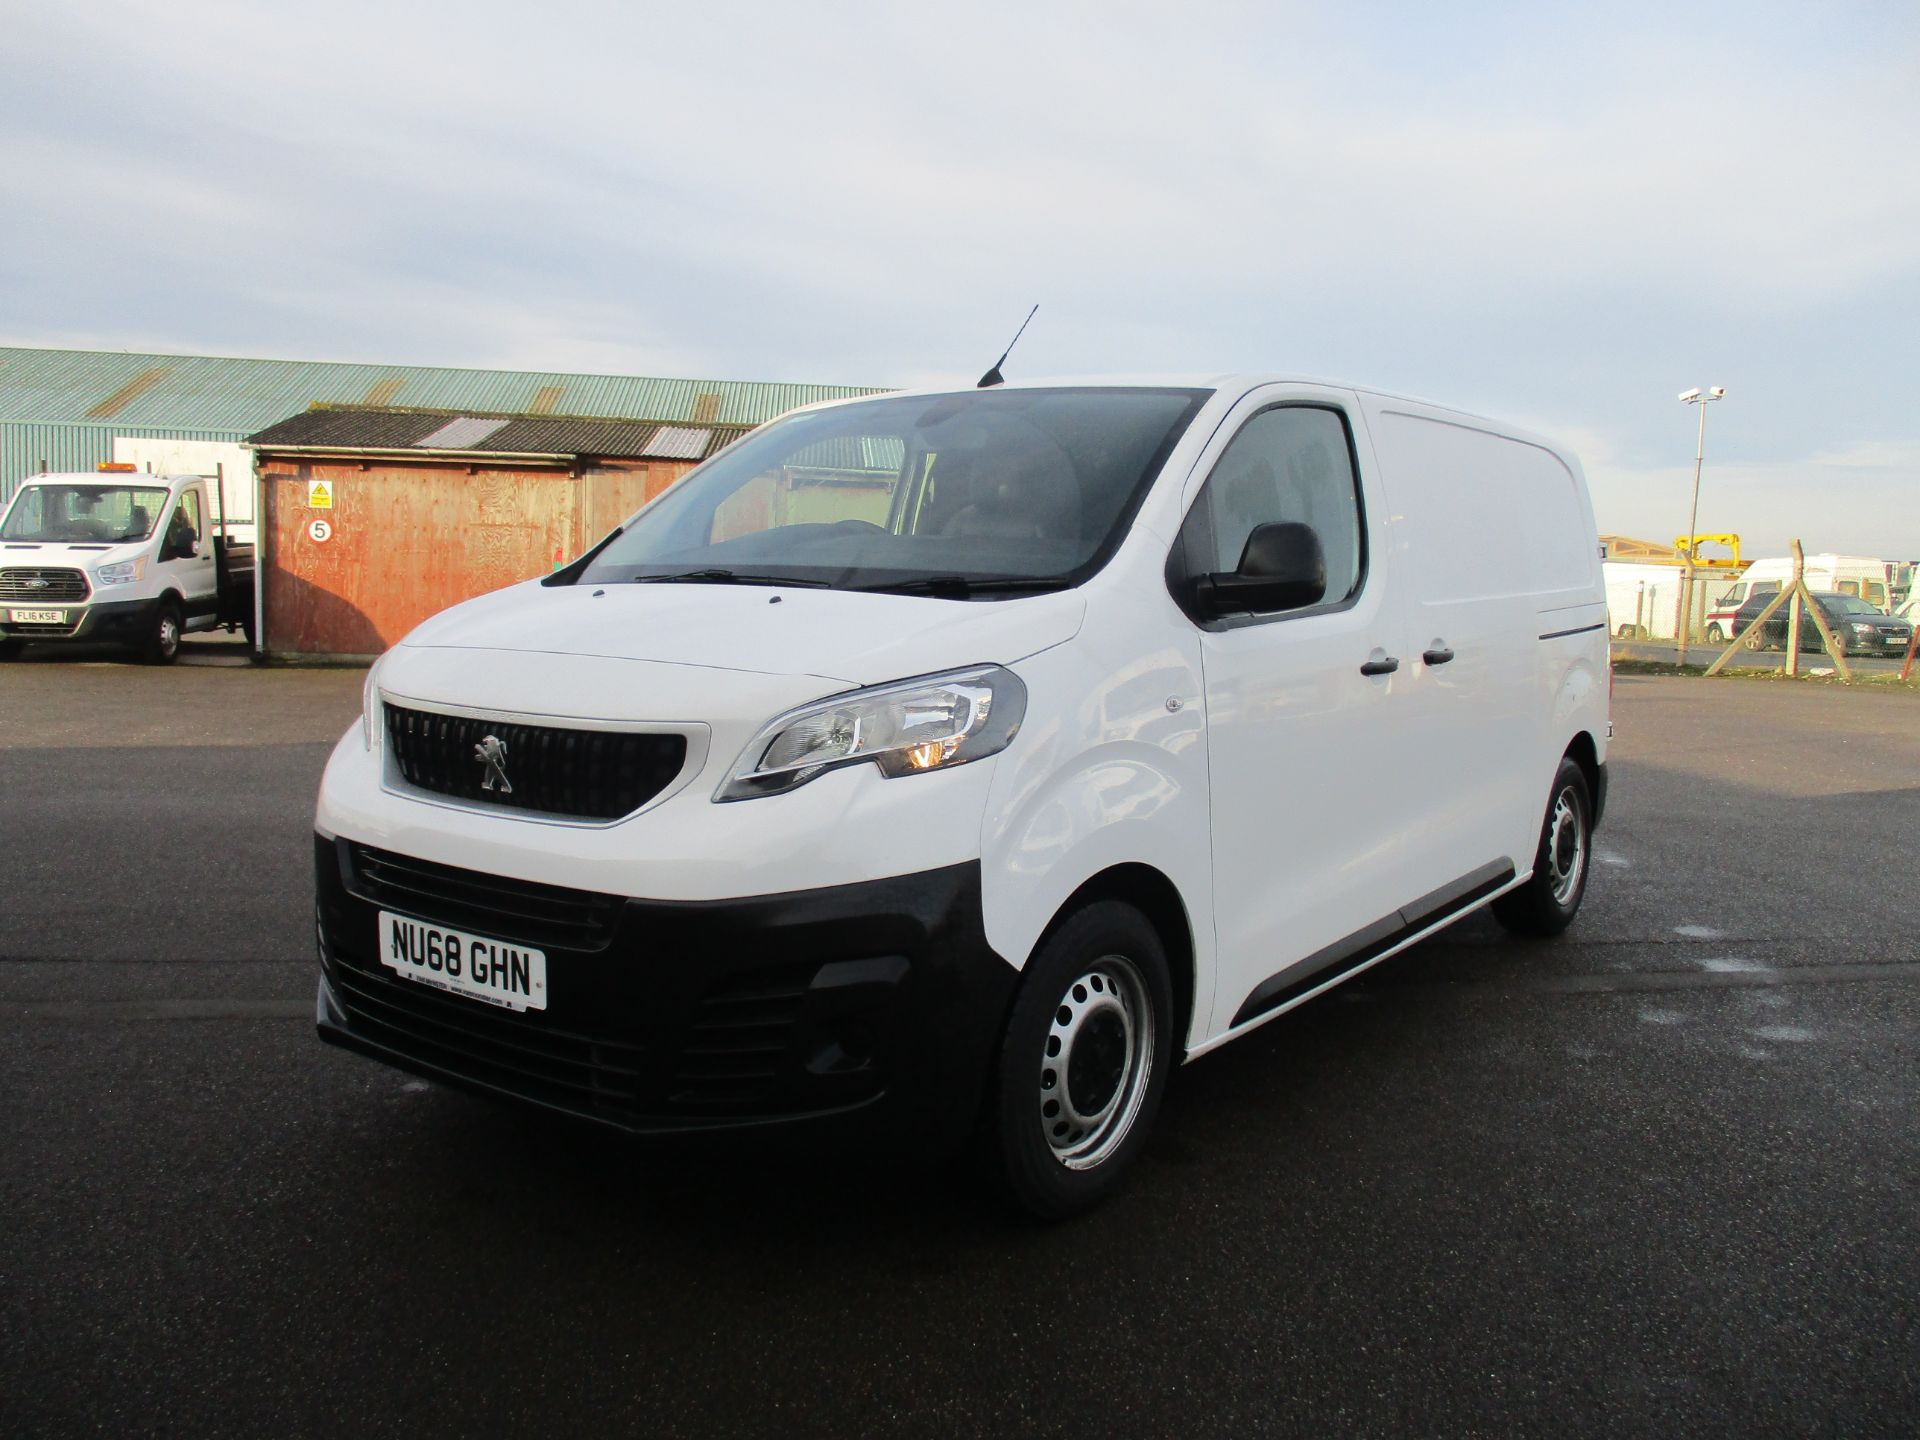 2018 Peugeot Expert STANDARD 1000 1.6 BLUE HDI 95 PROFESSIONAL EURO 6. AIR CON (NU68GHN) Image 3